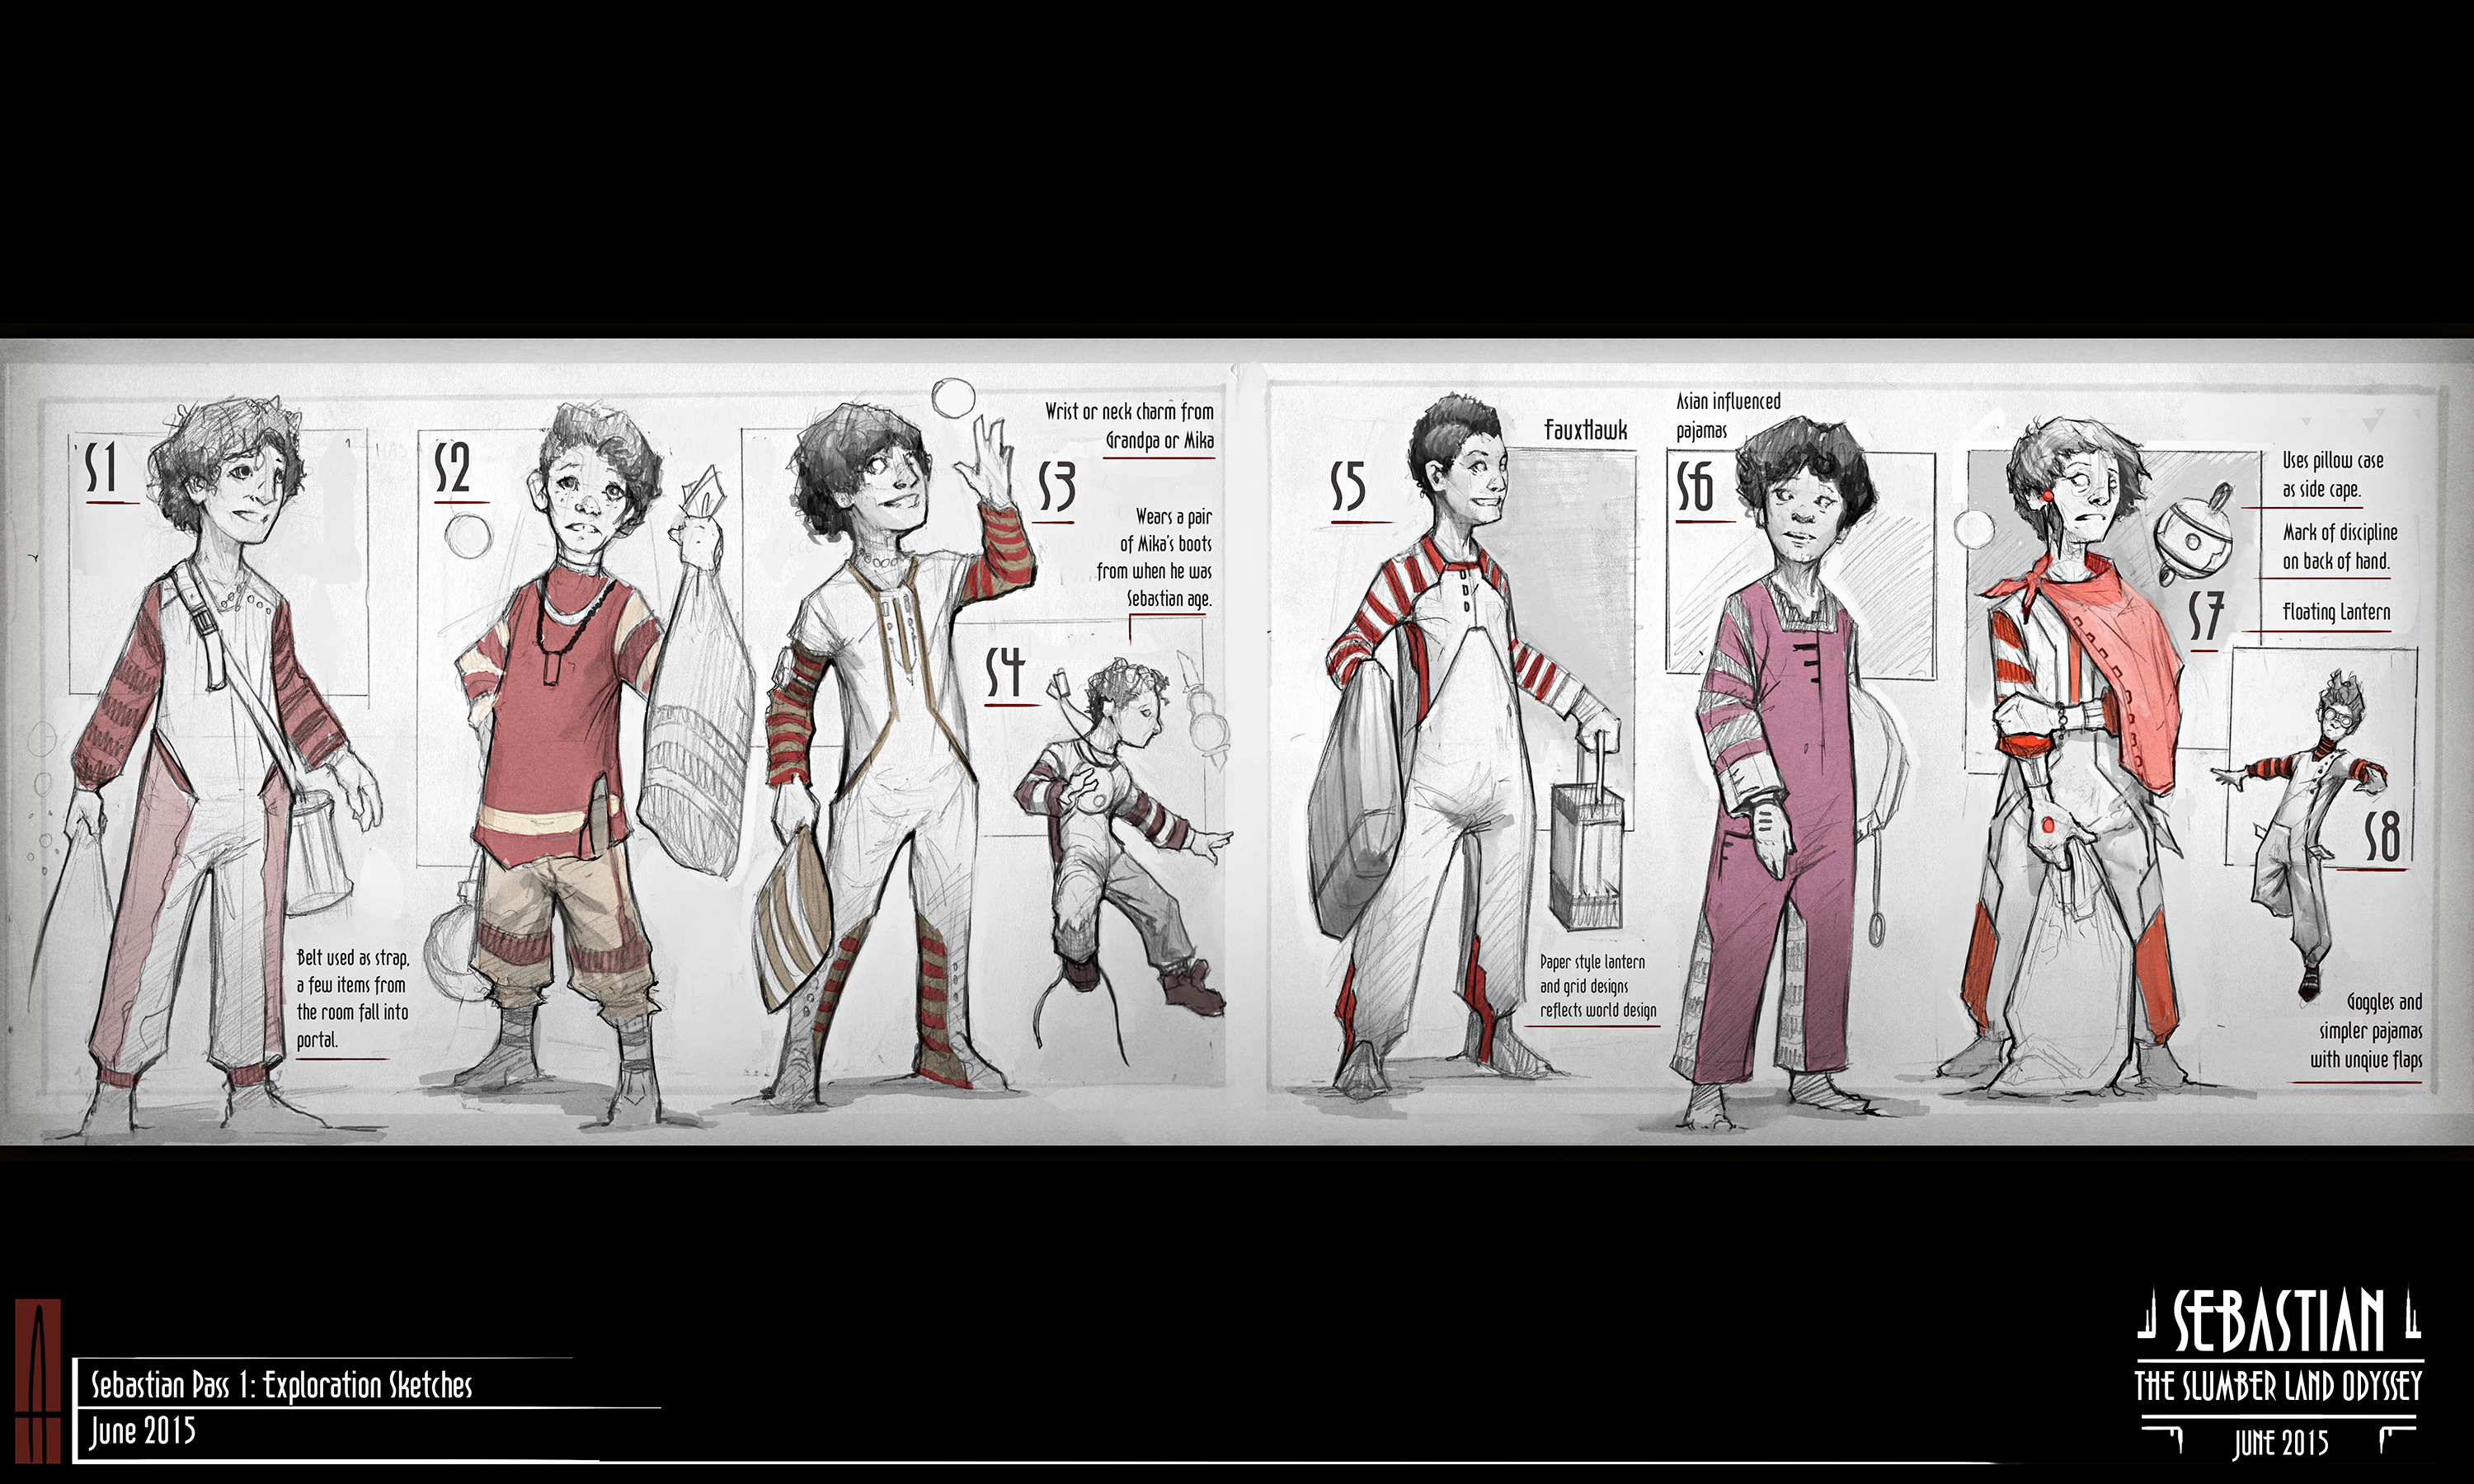 The brothers in fiction: concept art of the main character from Sebastian: The Slumberland Odyssey.